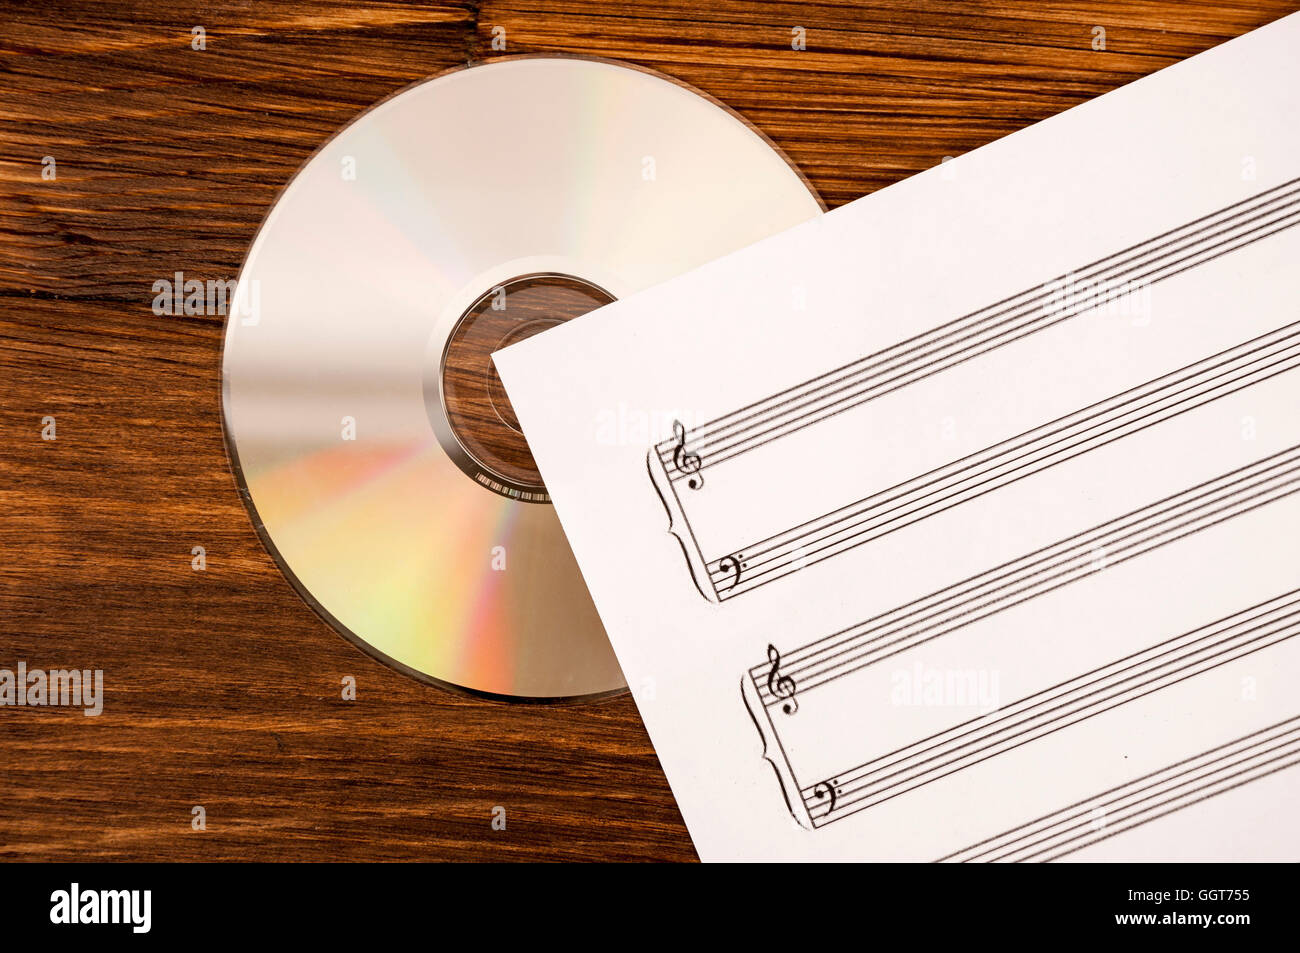 Music sheet and CD drive on wooden background. Old and new technology in music. Stock Photo